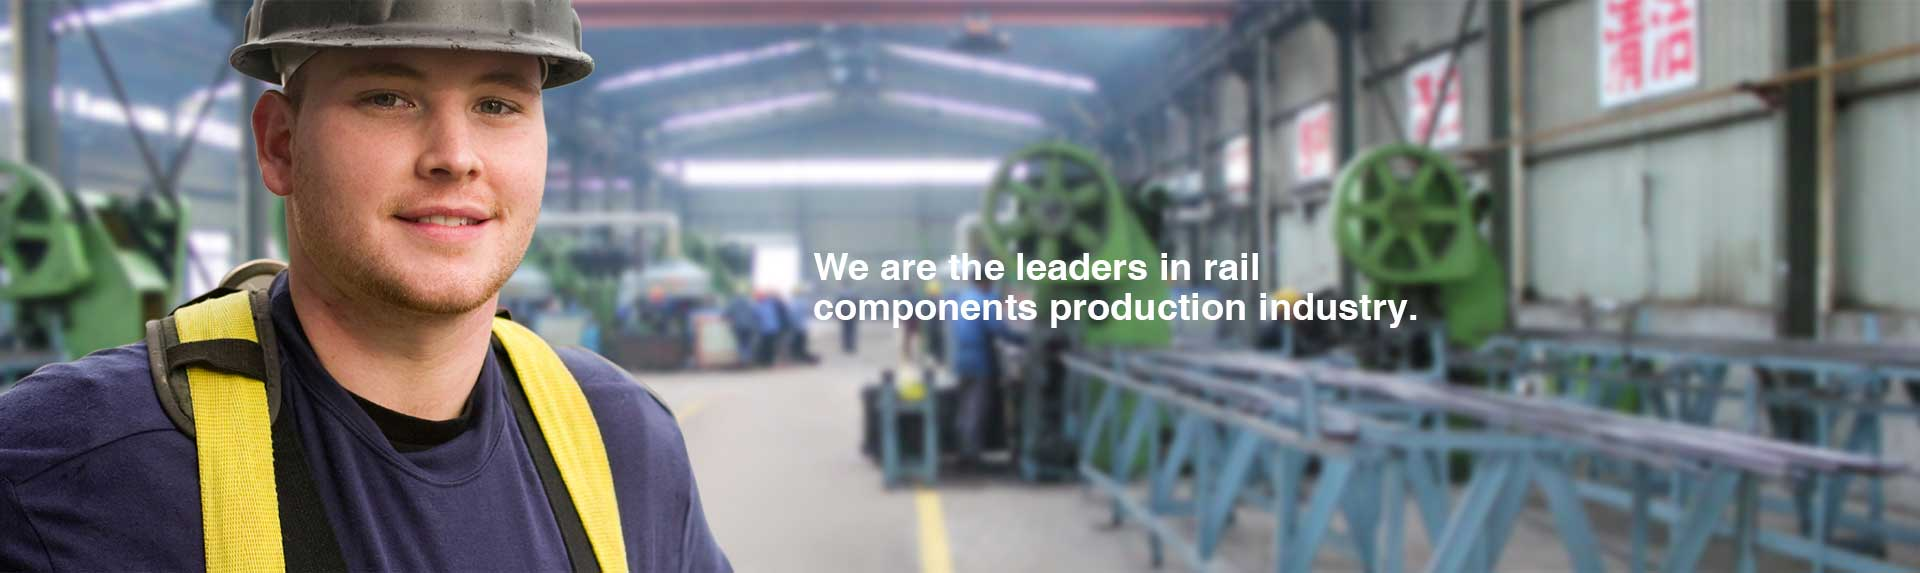 leading manufacturer of rail components